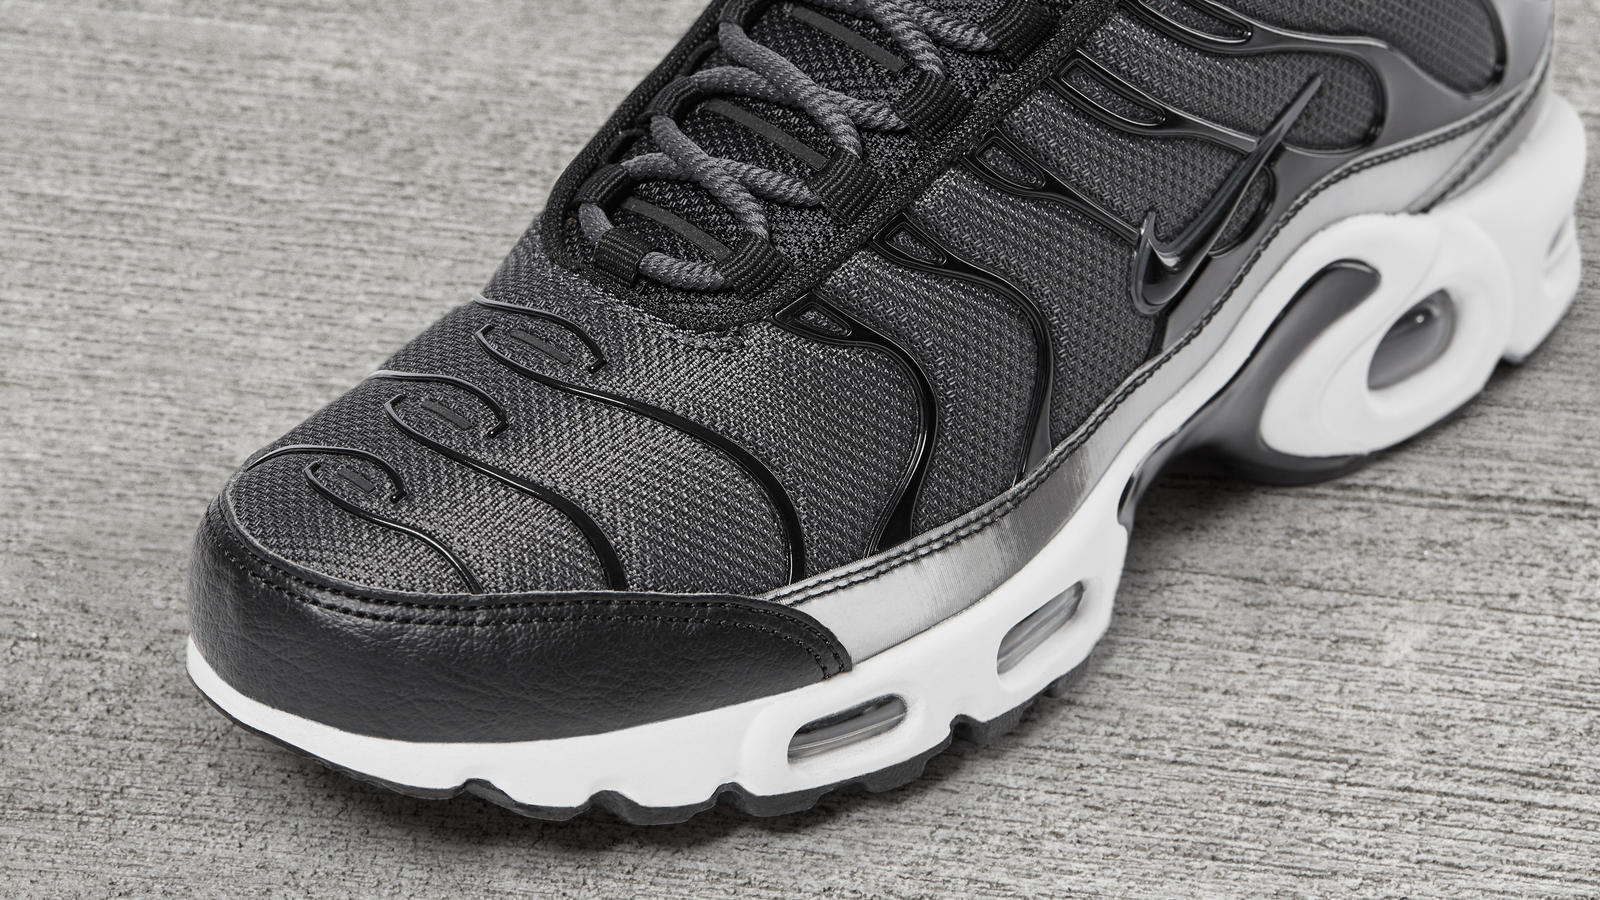 Air max plus holographic black 3 hd 1600